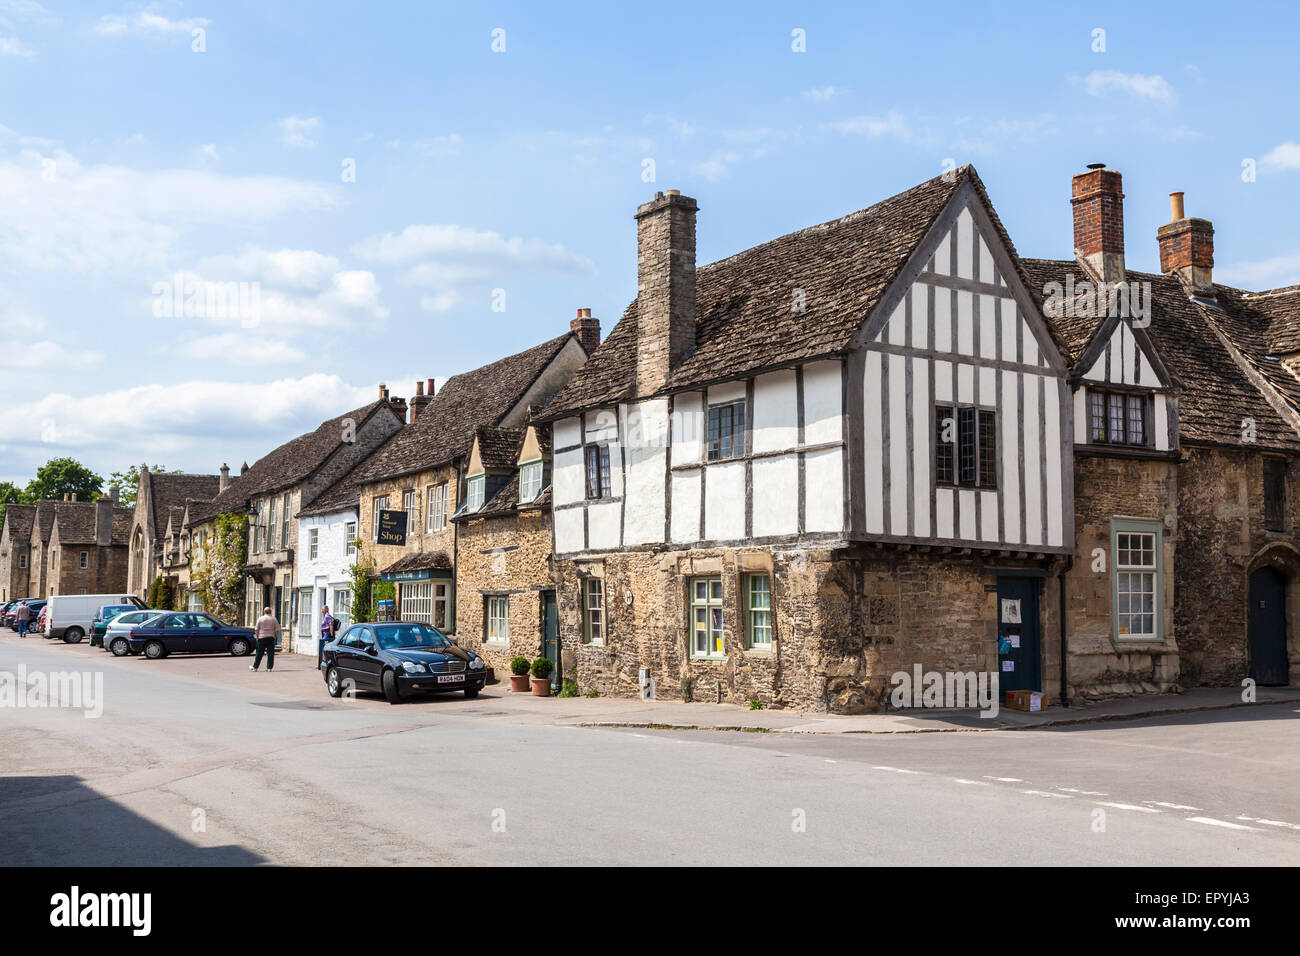 Lacock High Street with traditional old-fashioned and unspoilt timbered cottages, Lacock, Wiltshire, UK - Stock Image